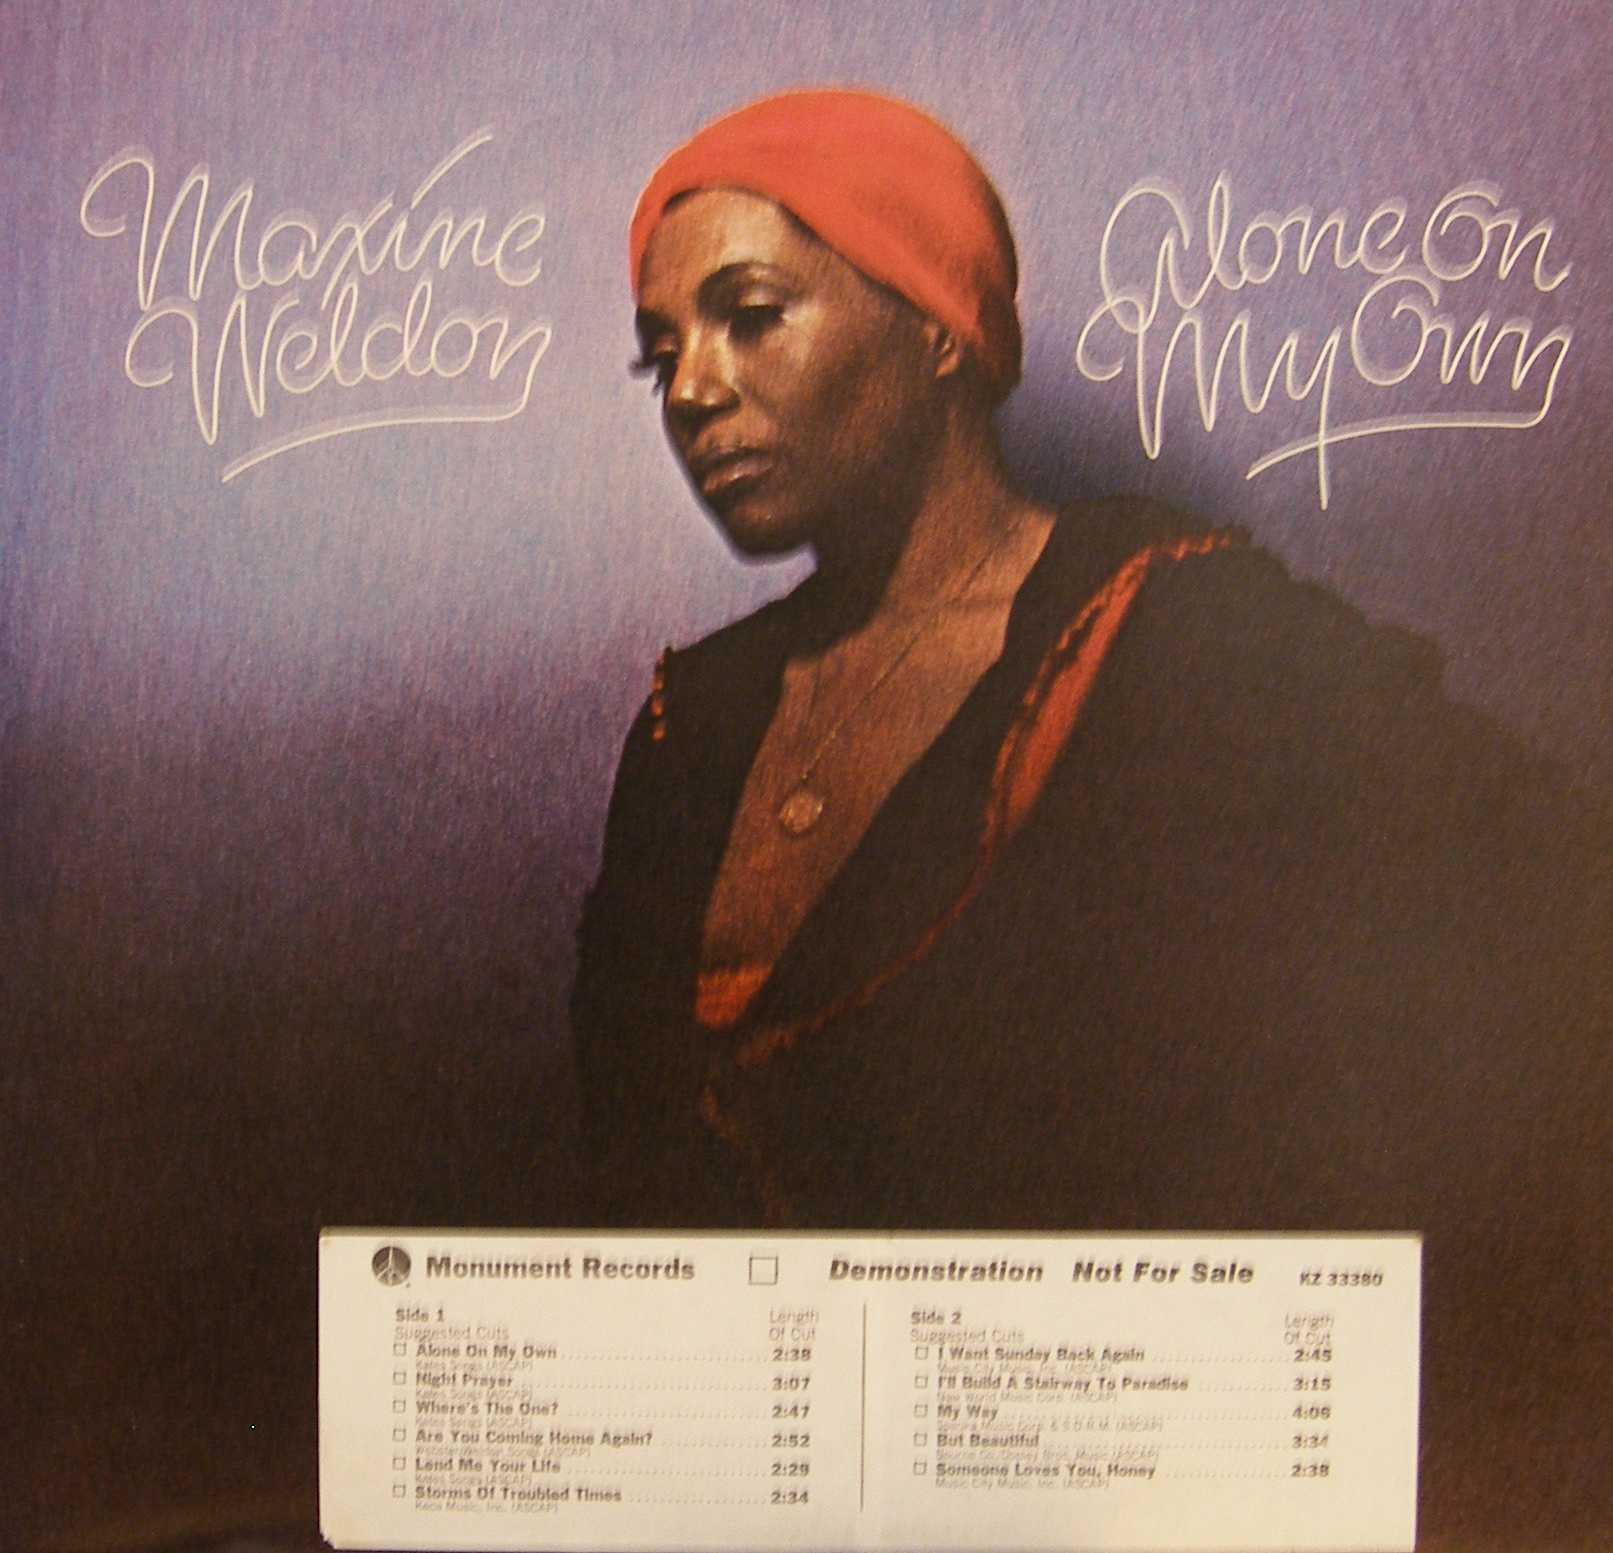 Maxine Weldon - Alone On My Own